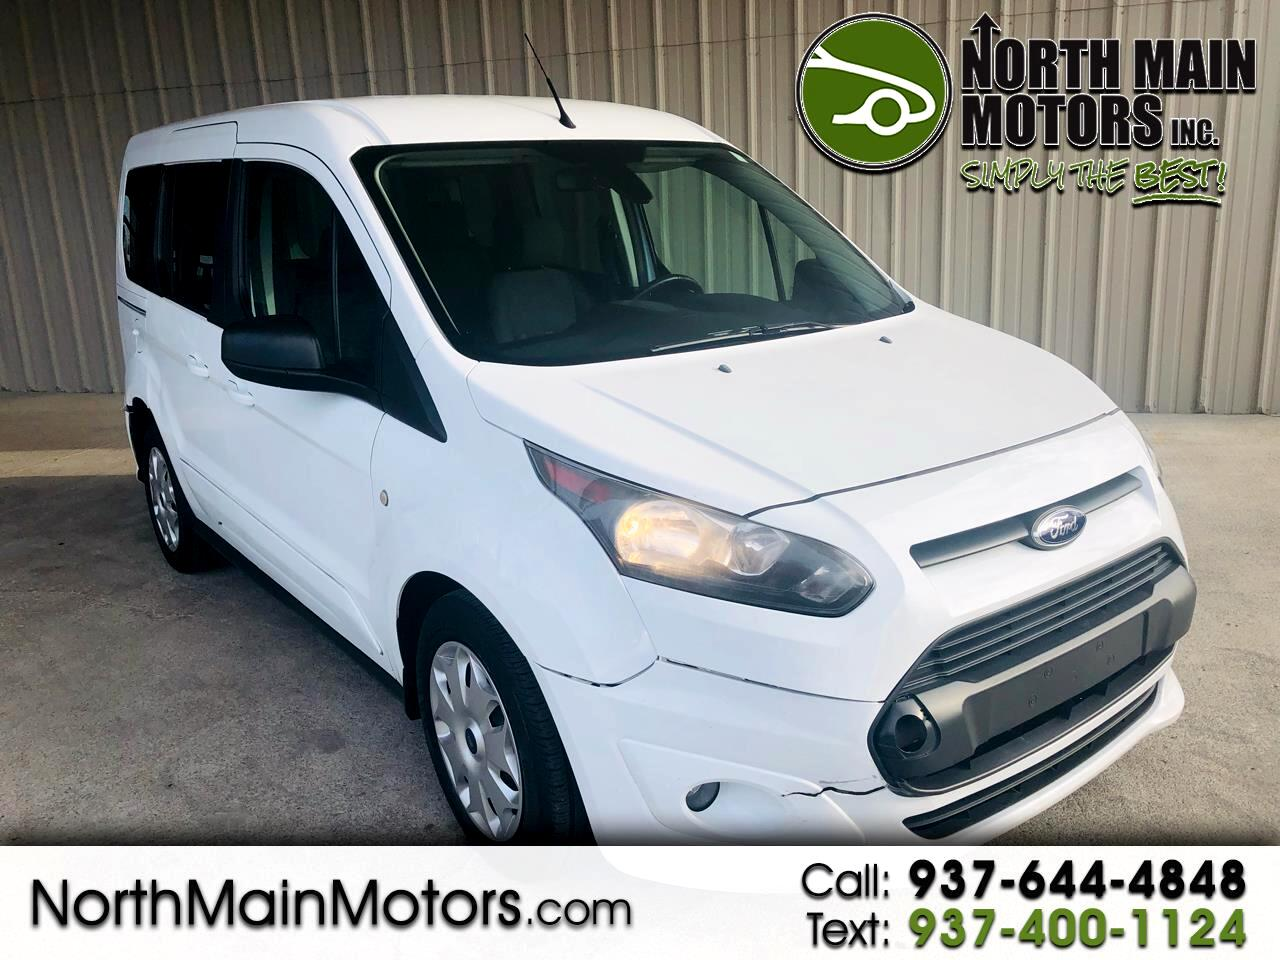 Ford Transit Connect Wagon 4dr Wgn SWB XLT 2015